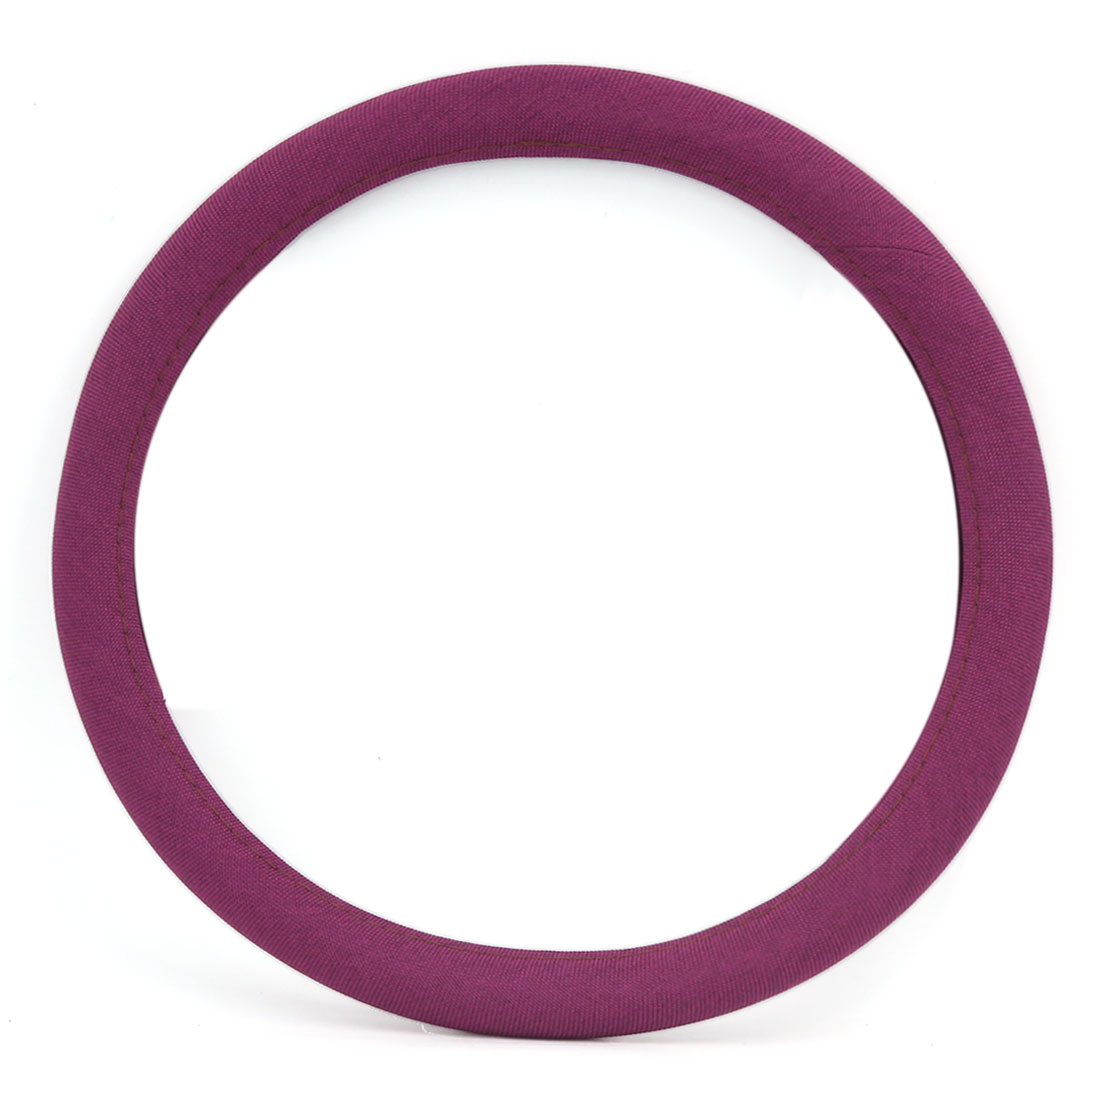 Four Seasons Universal Breathable Comfort Steering Wheel Cover Purple for Car